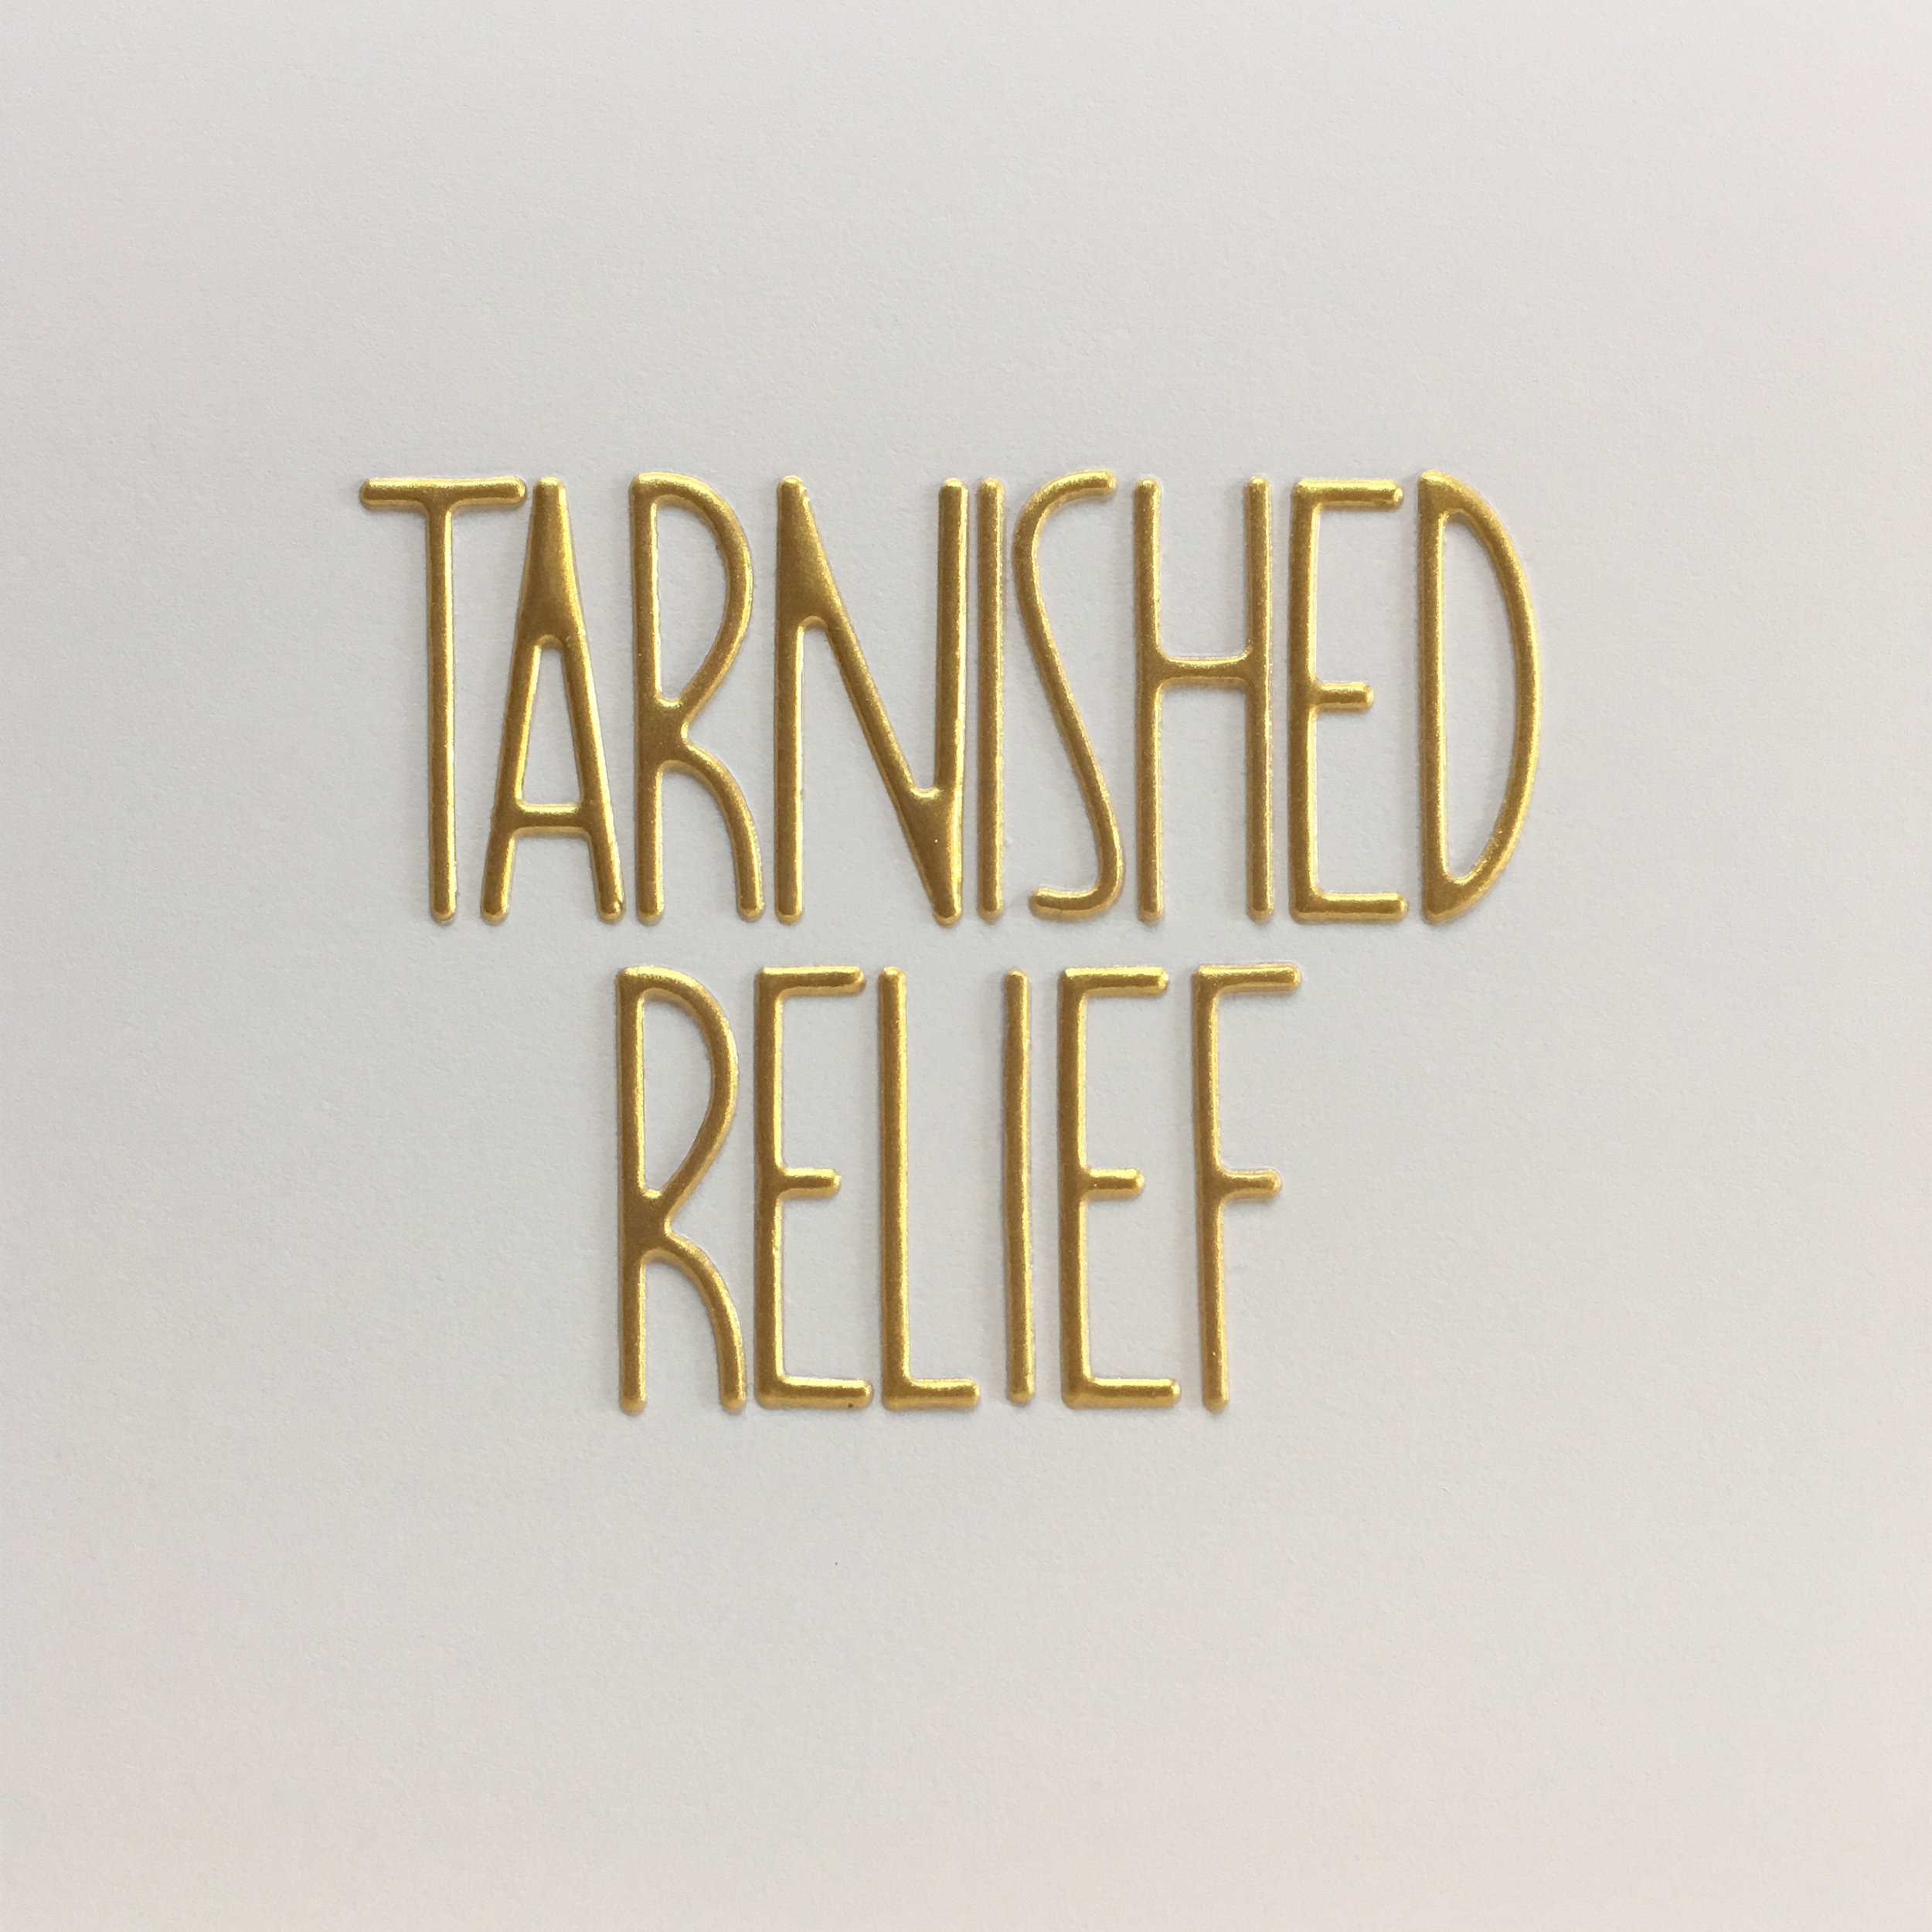 tarnished relief.jpg